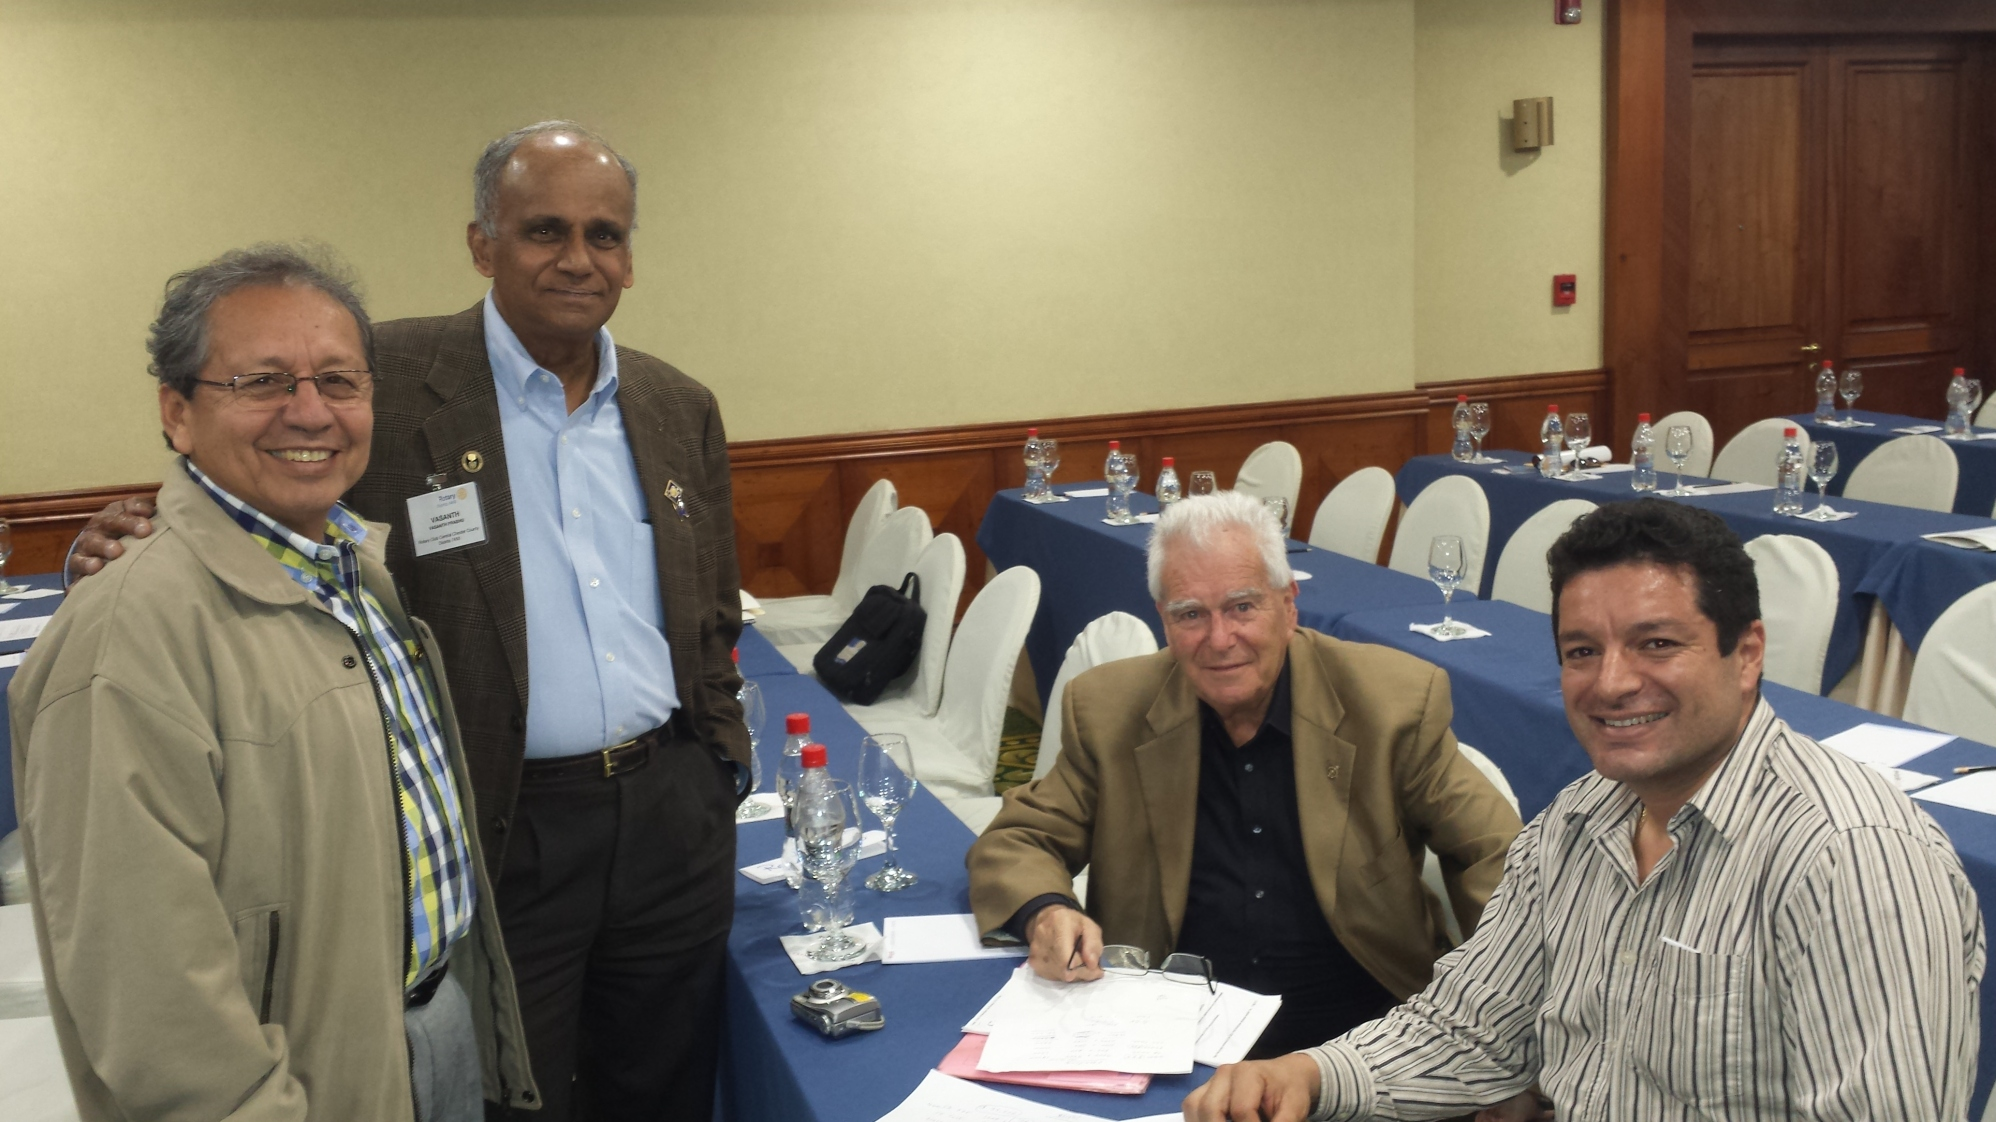 From left to right: Galo Alfonso Betancourt Criollo, Dr. Vasanth Prabhu, PDG Juan Prinz, and current President Rene Romero Solano of the Rotary Club of Santa Rosa. This photo was taken during the discussion of the Biodigester project during the most recent Ecuador Project Fair.